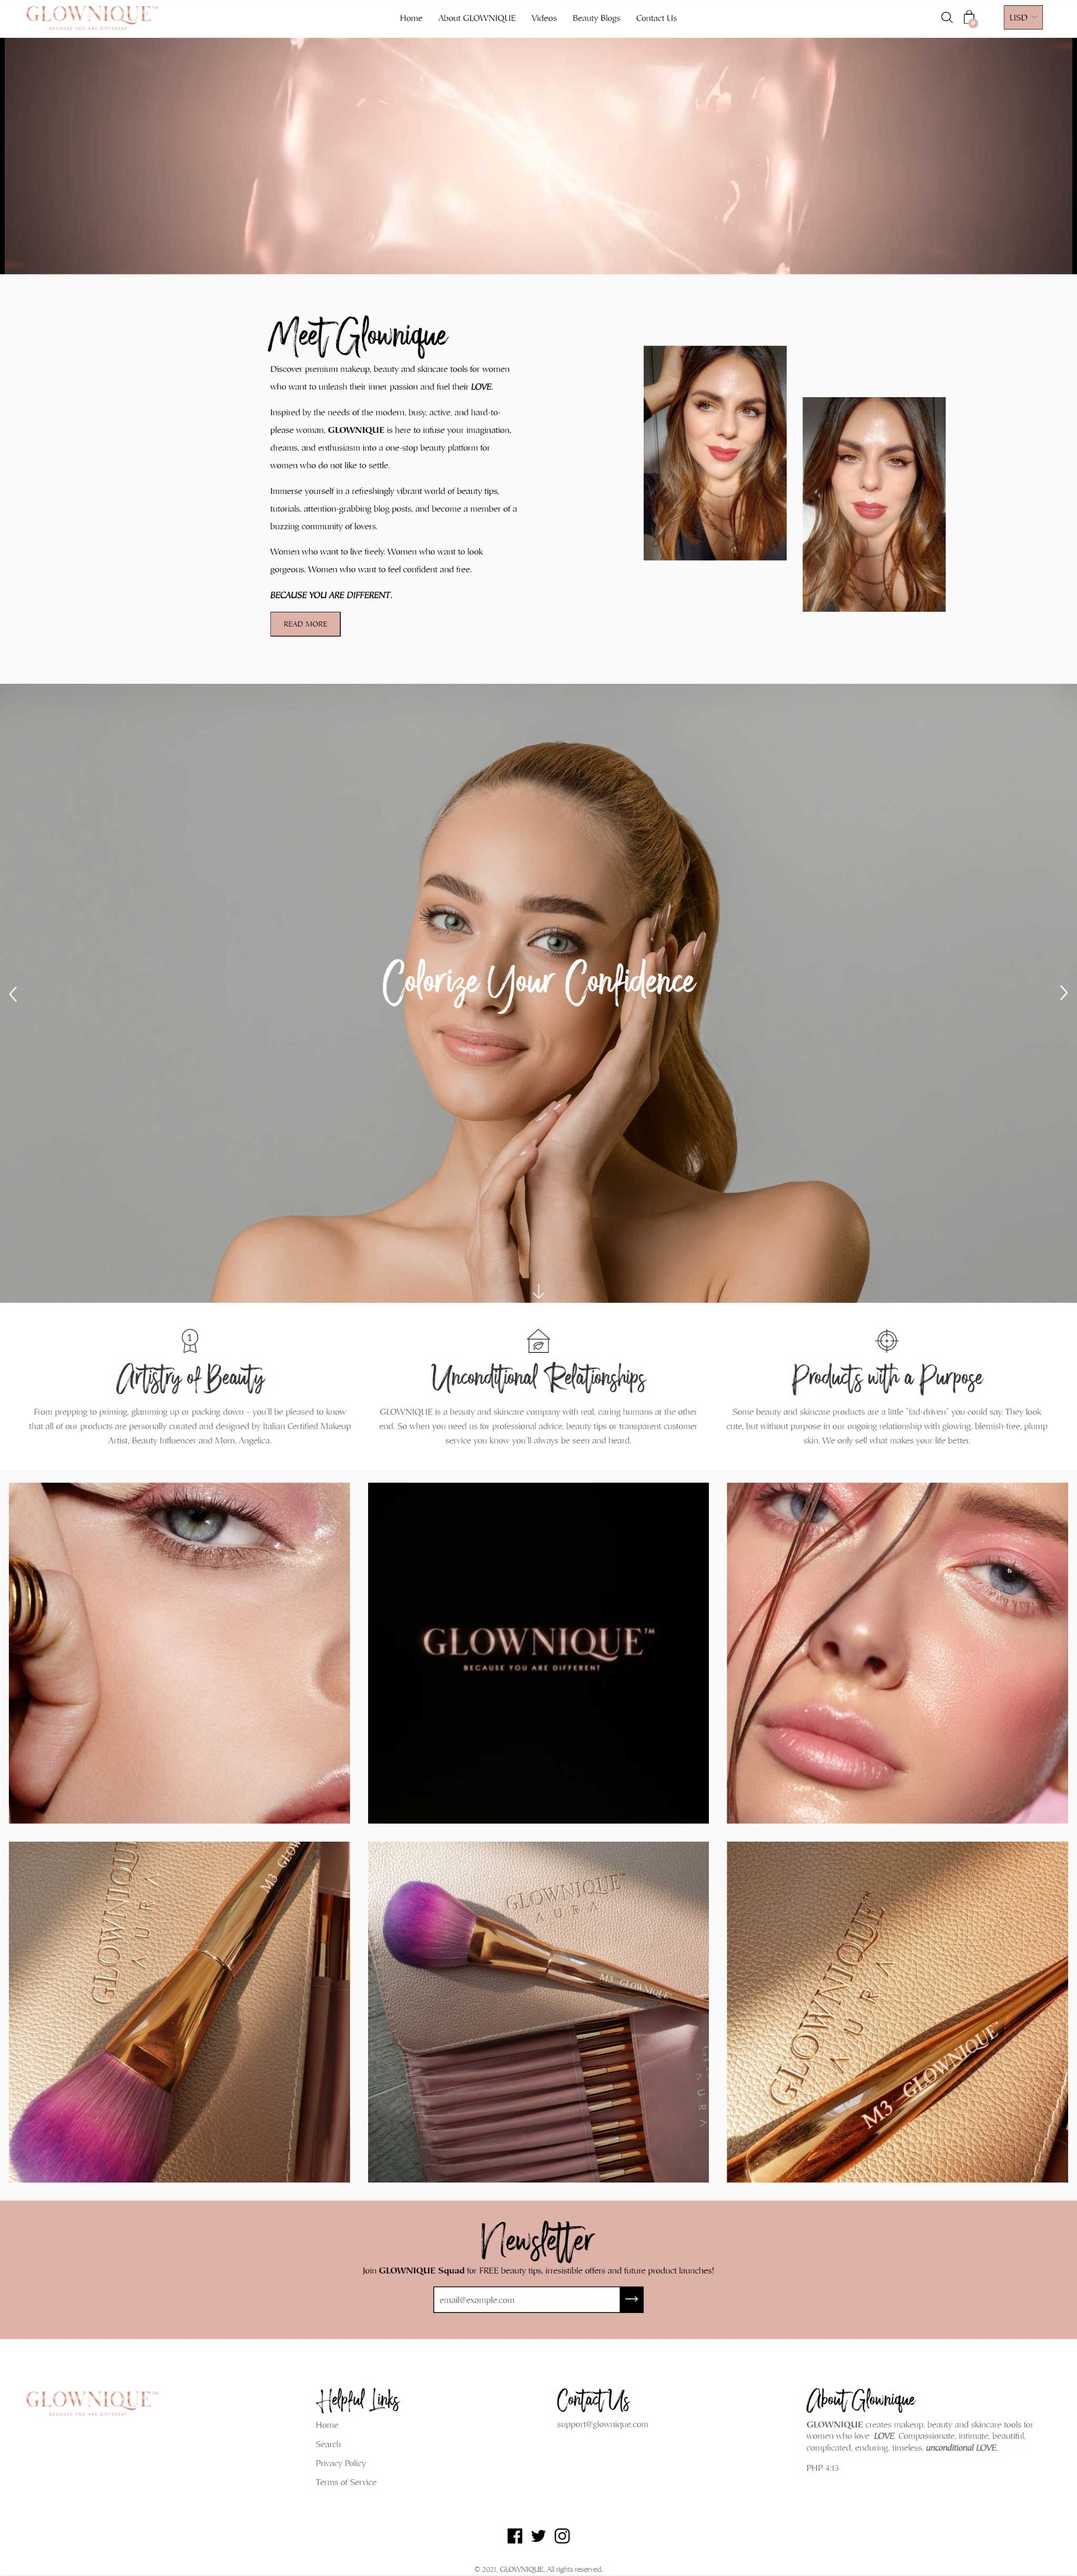 Glownique - makeup brushes website